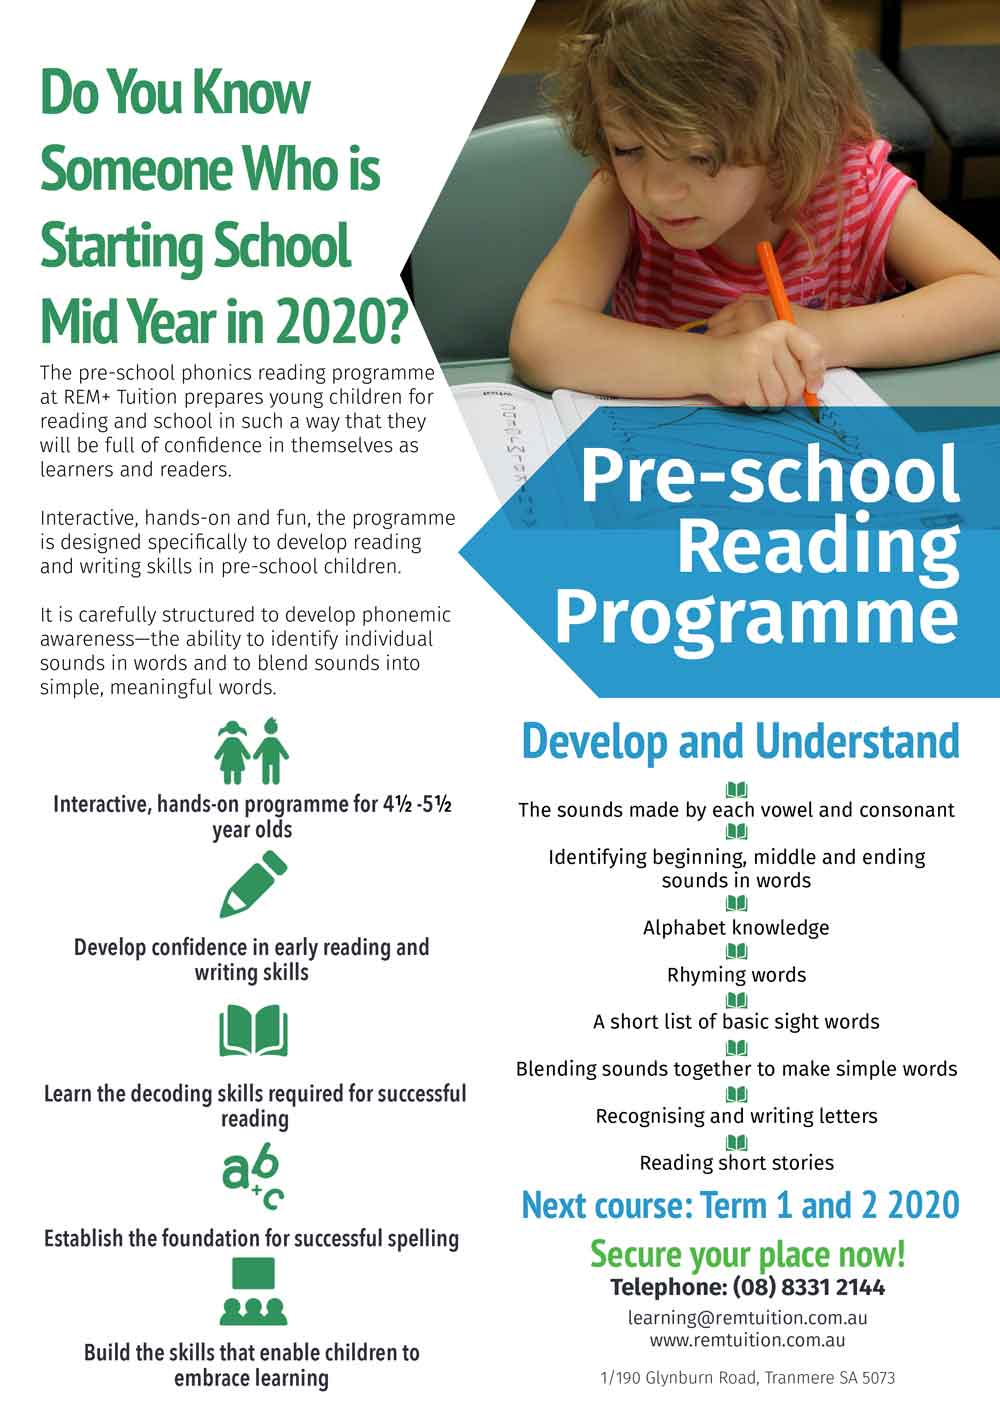 Pre-school Reading Programme Adelaide